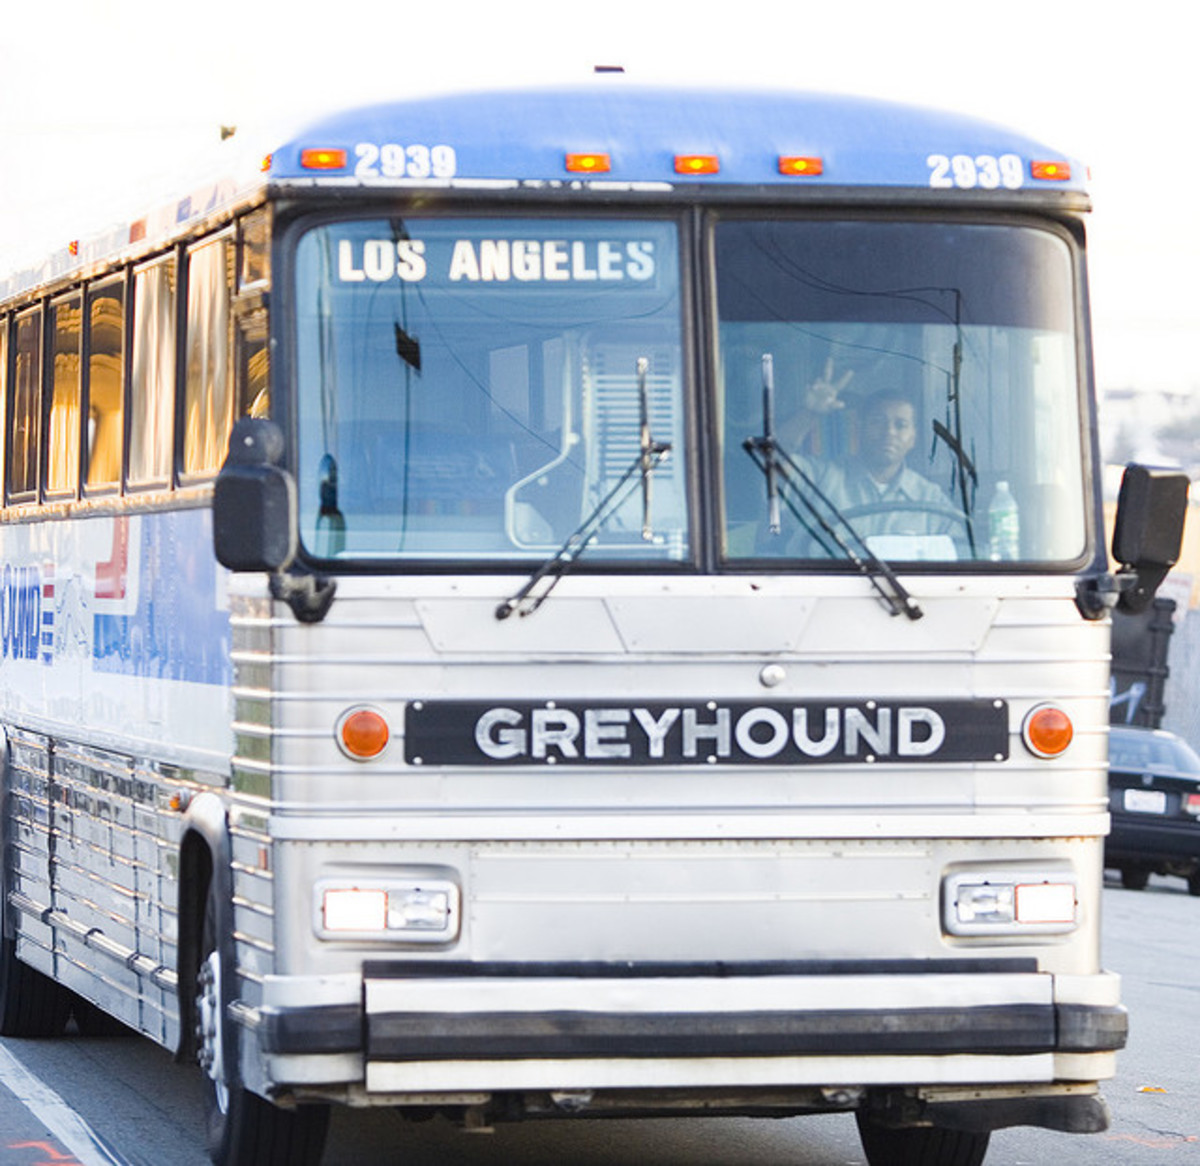 How to Have a Good Travel Experience on a Greyhound Bus